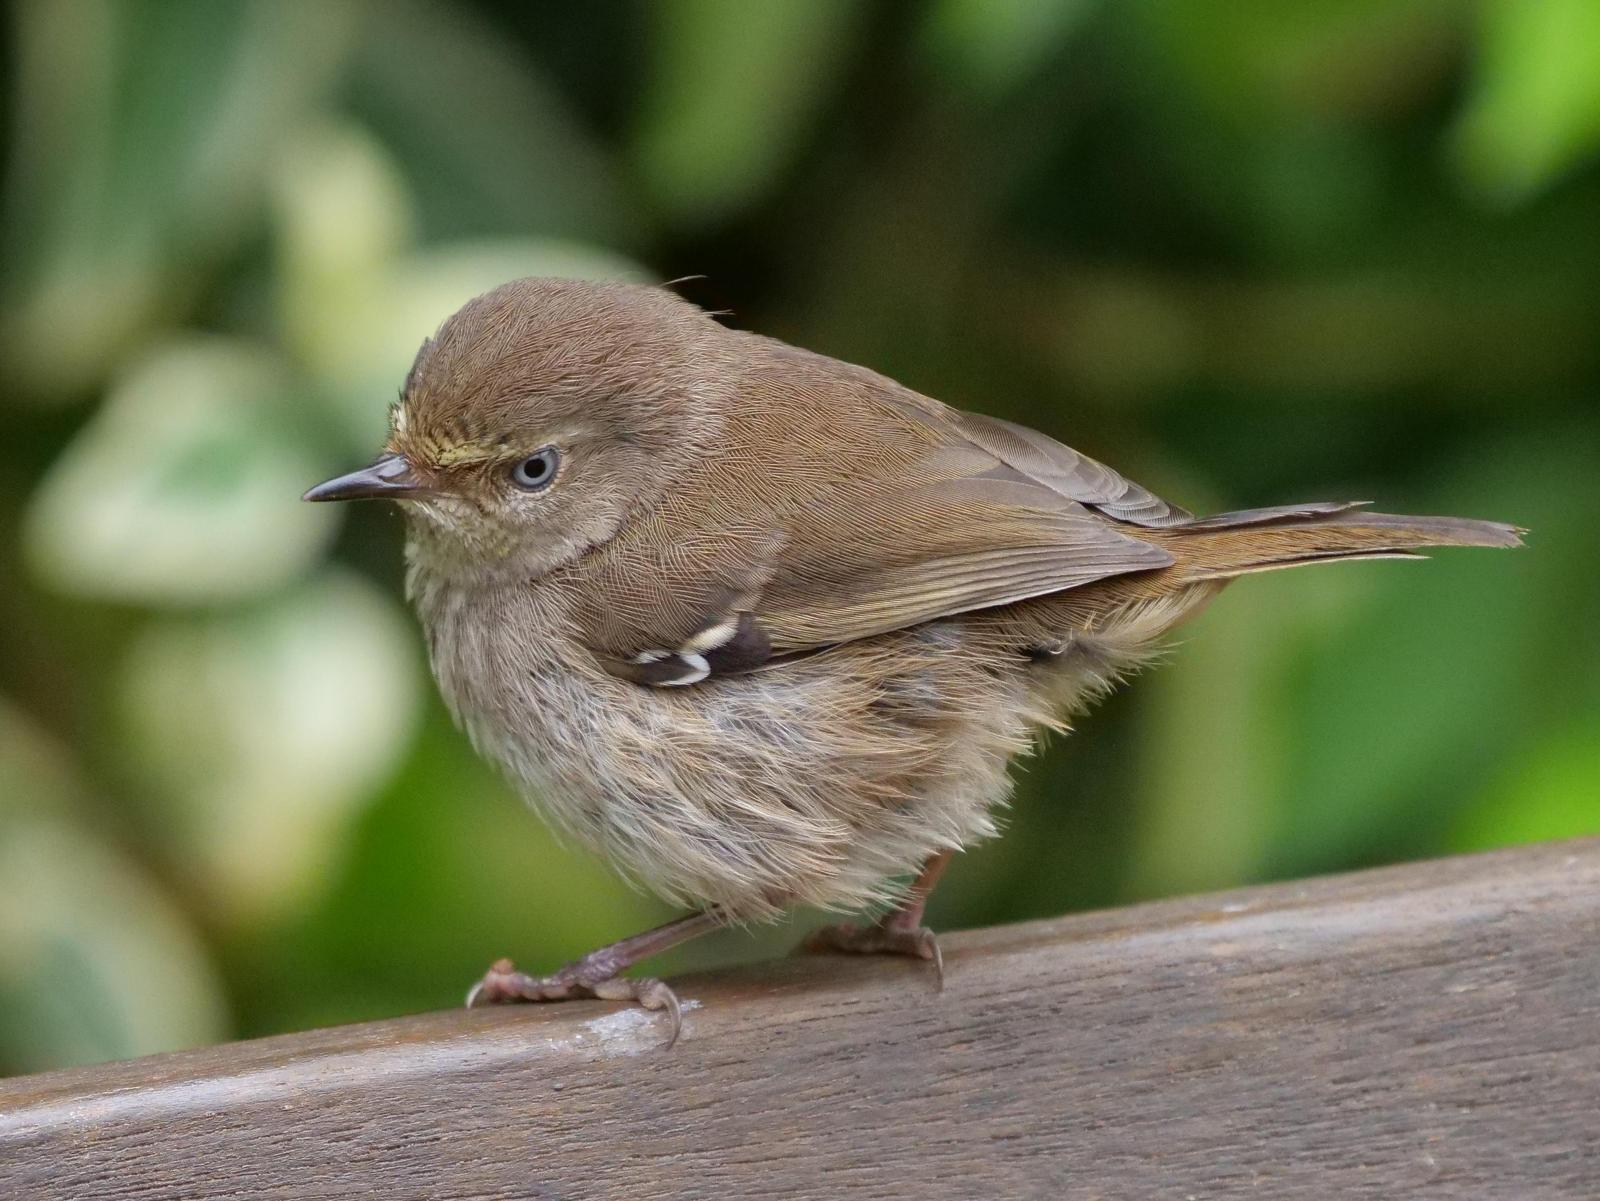 White-browed Scrubwren Photo by Peter Lowe